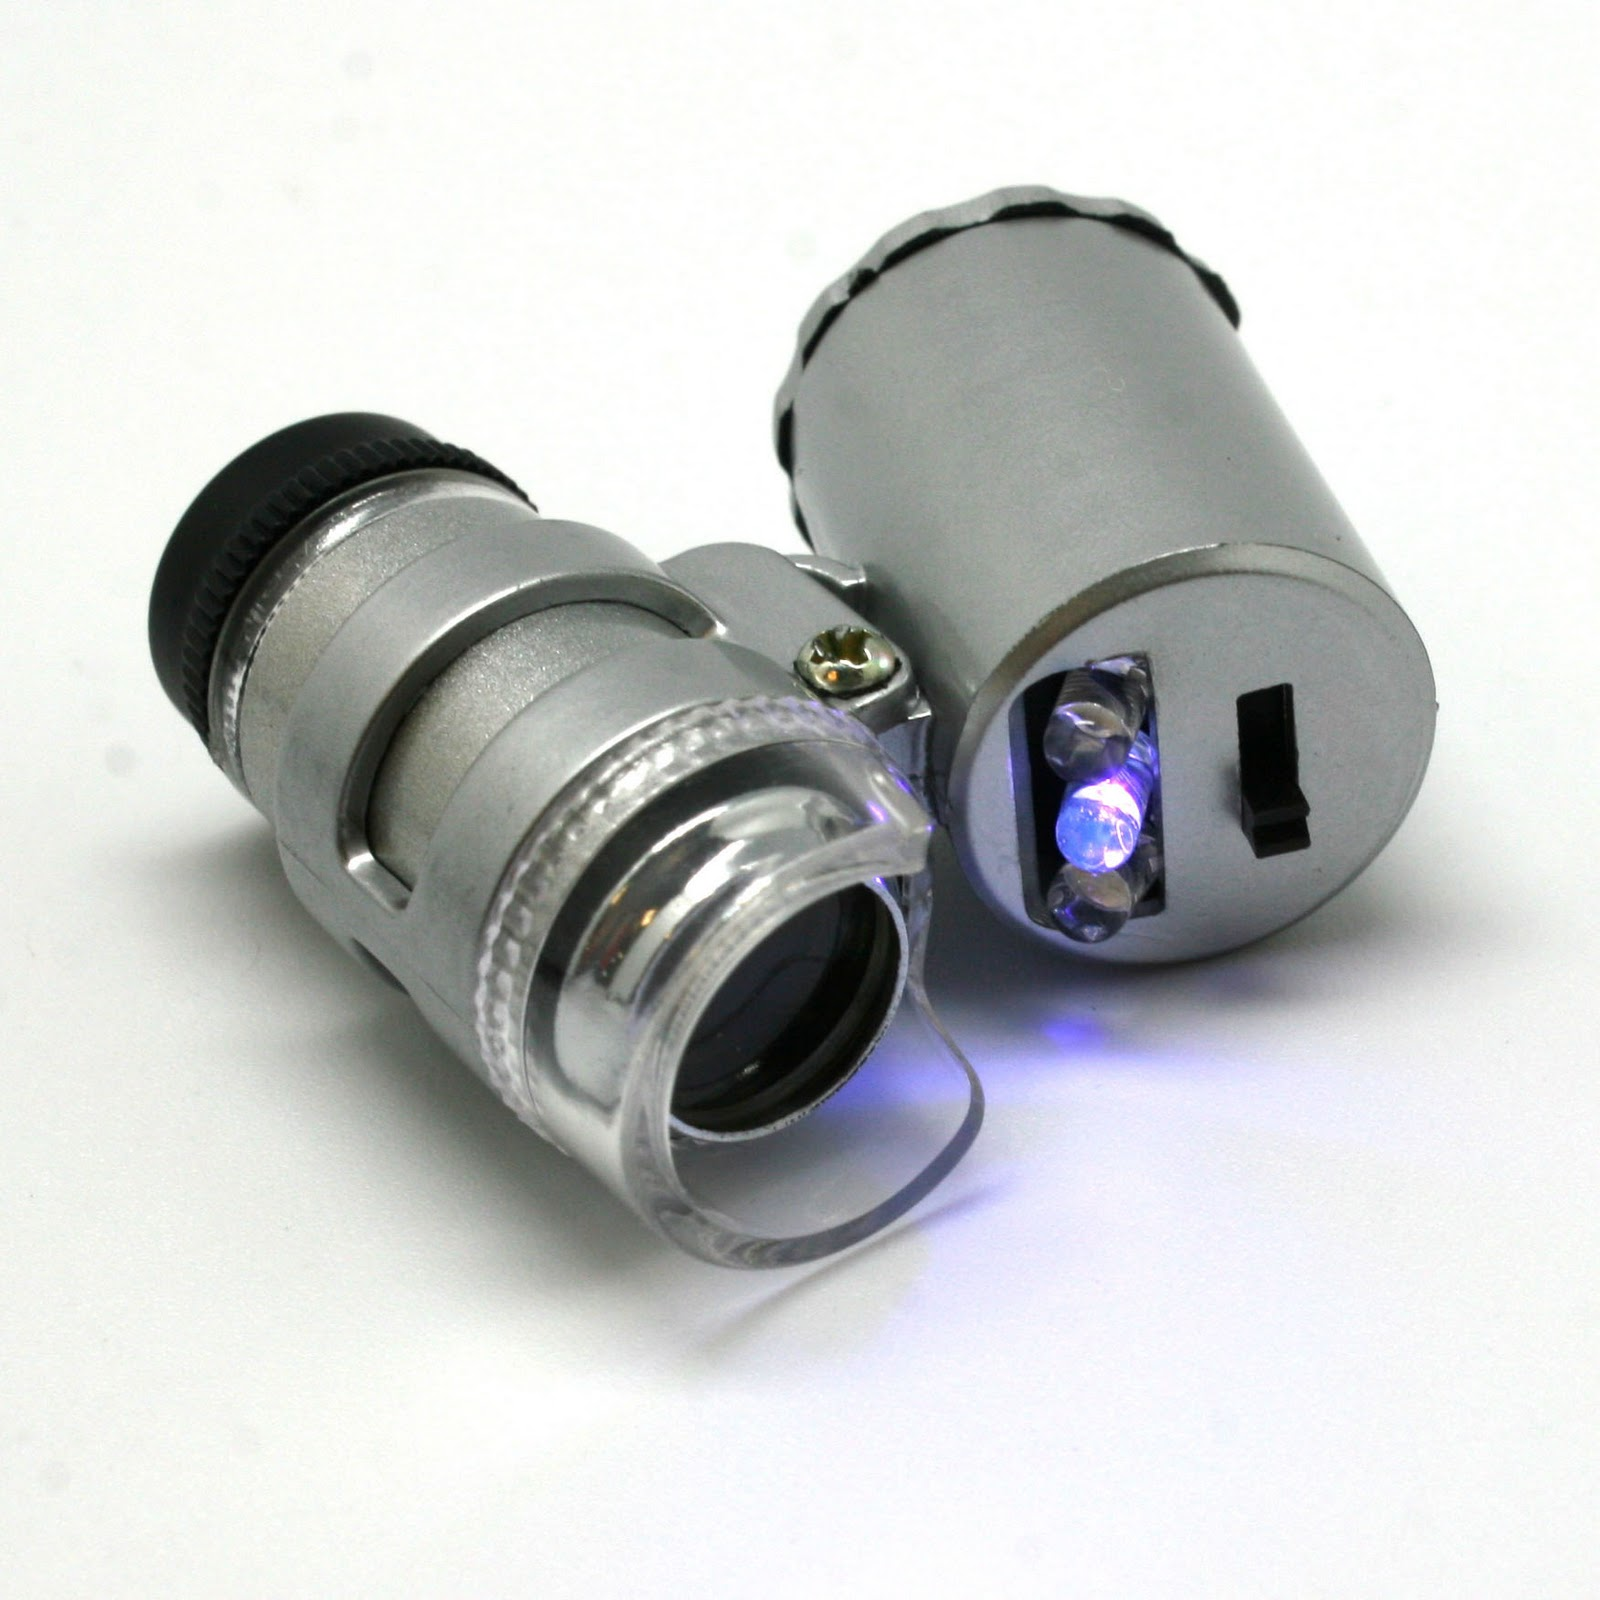 Cell Phone Gadgets: Telescope and Microscope for Cell Phones